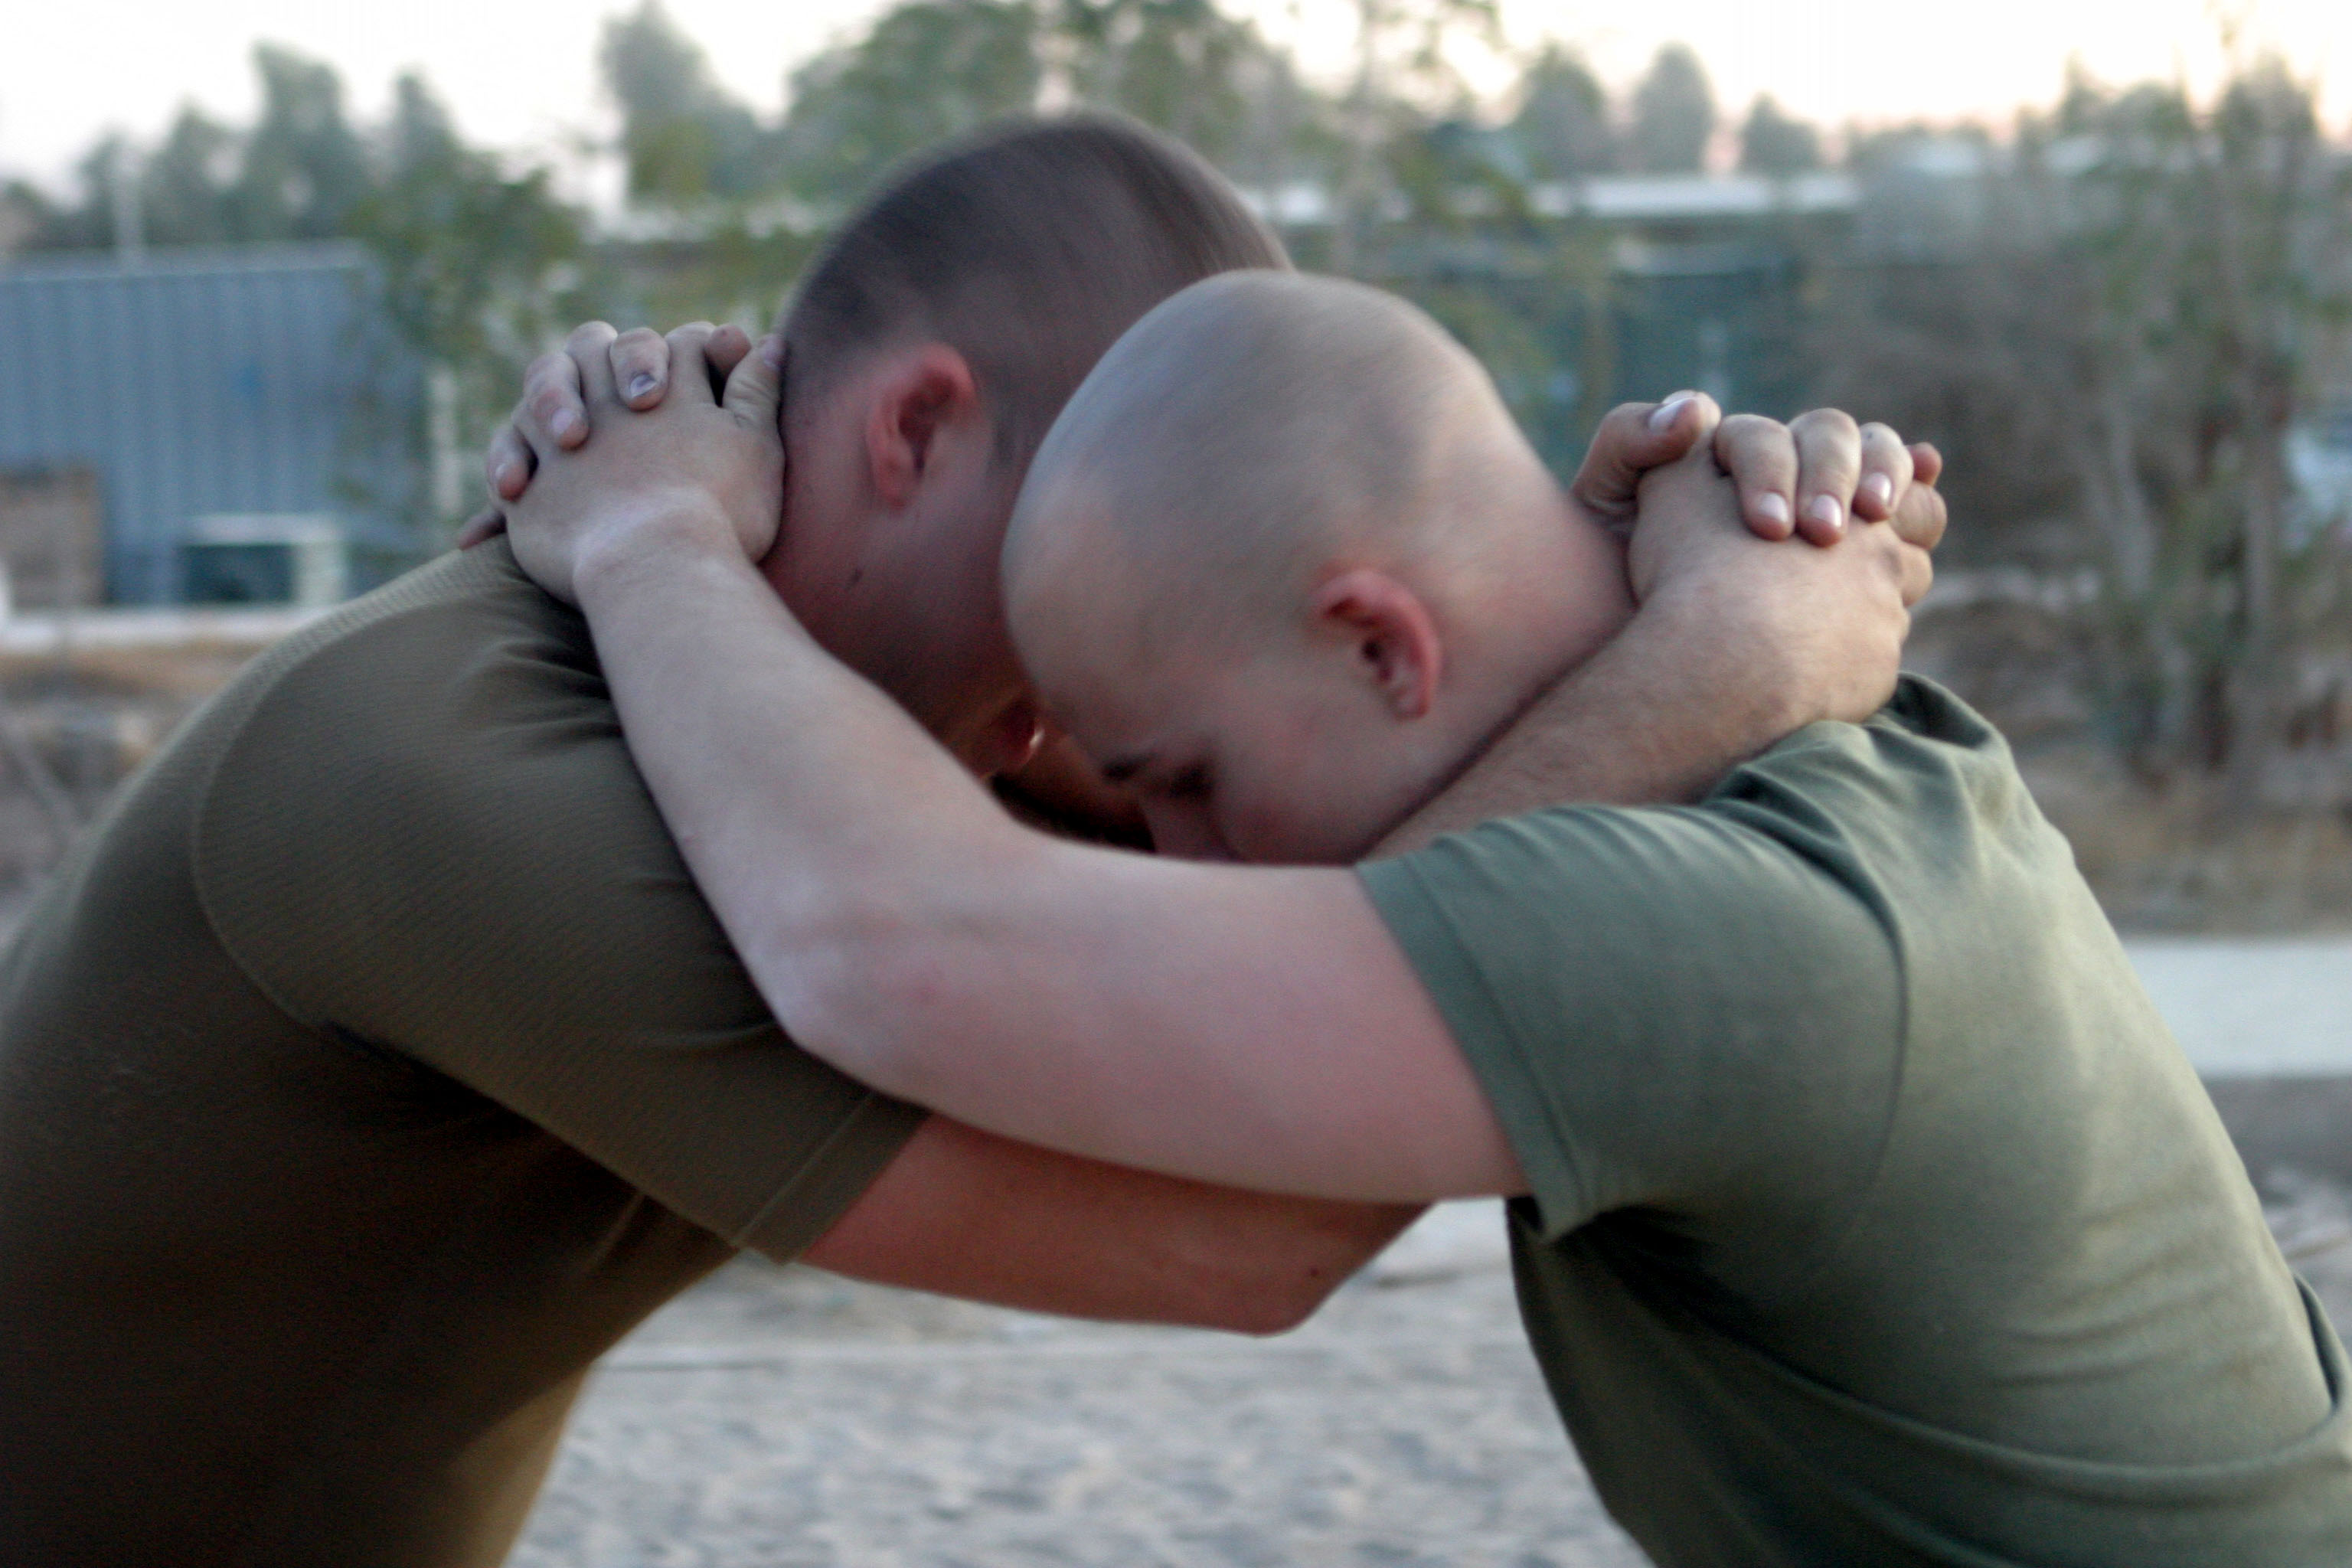 Two men in khaki T-shirts have wrapped their arms around each other's neck